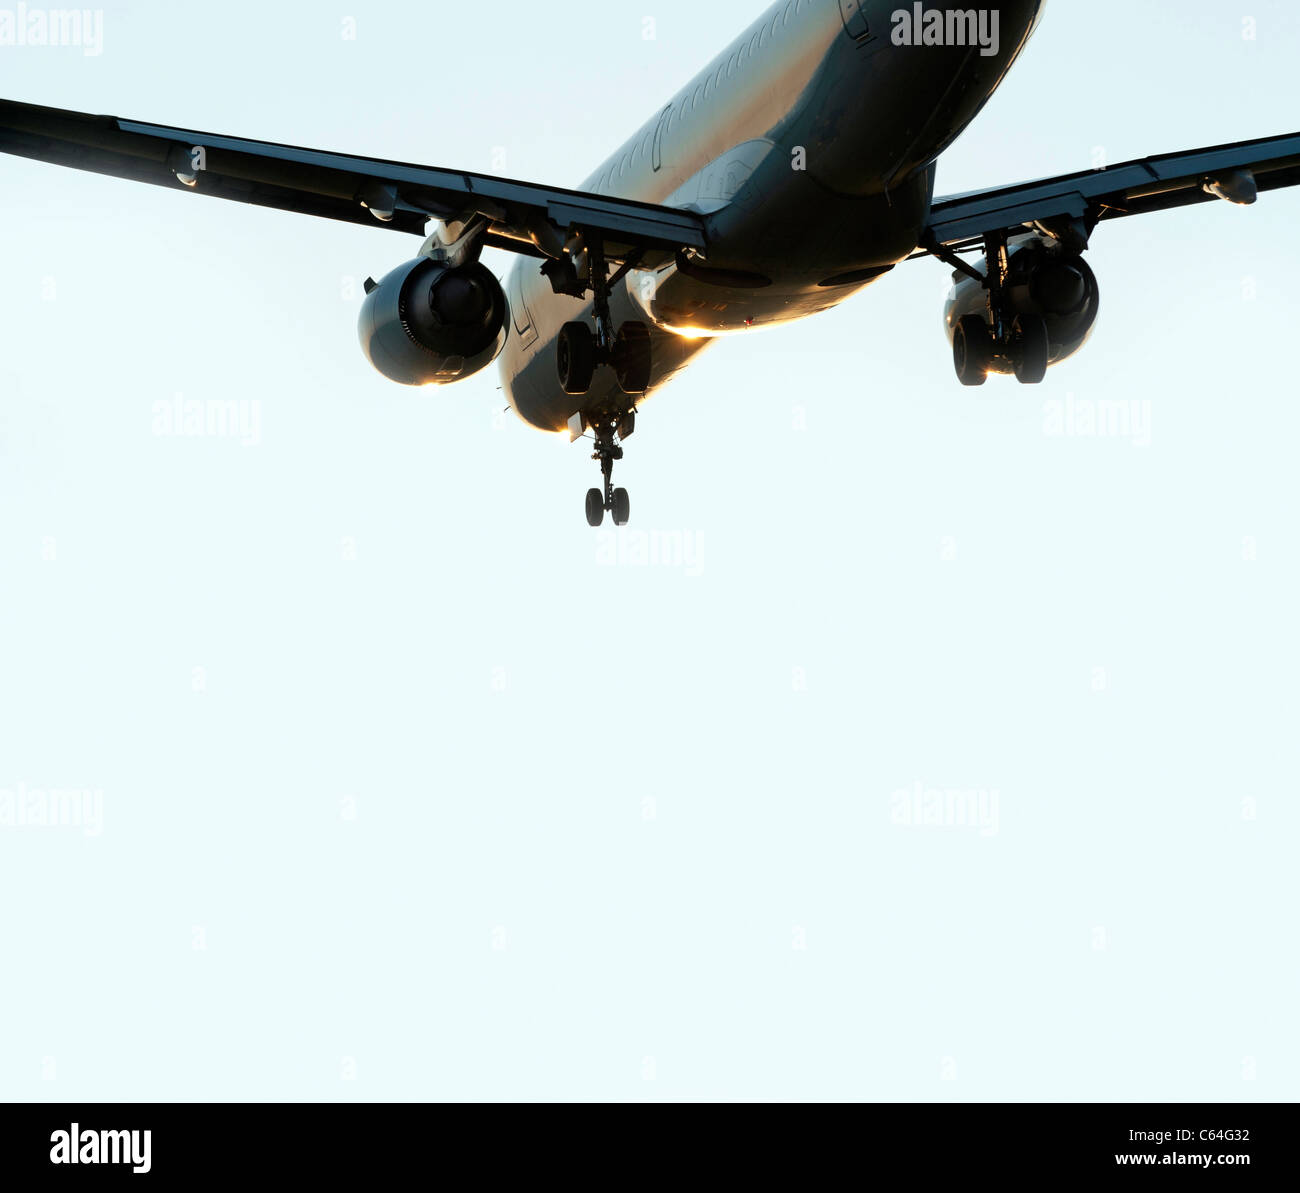 Airplane with jet engines before landing - Stock Image